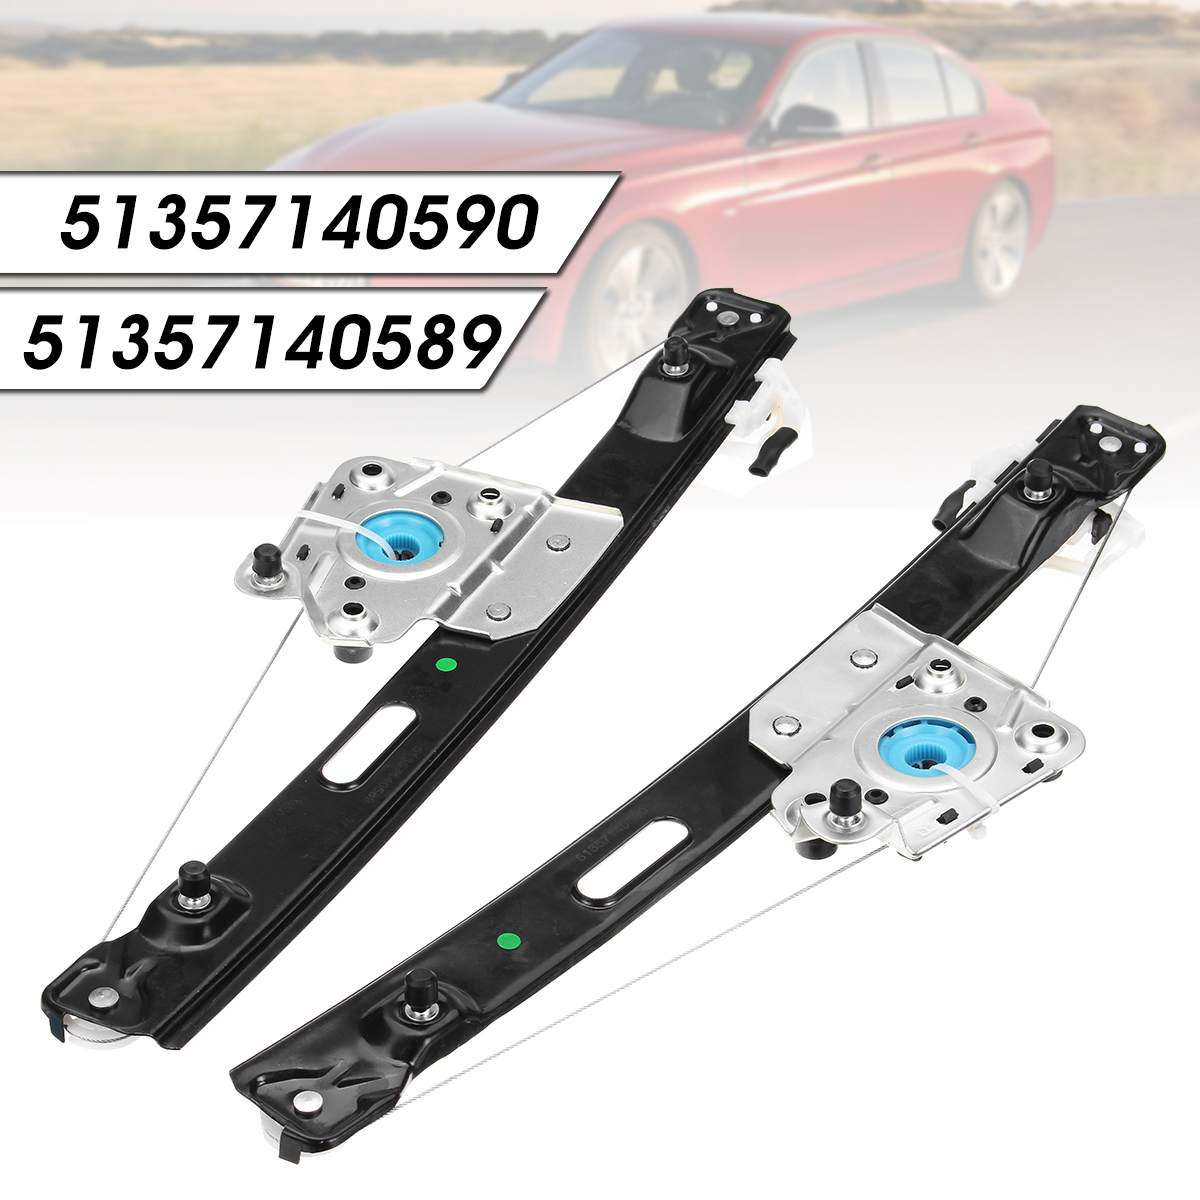 Rear Left / Right Power Window Regulator For BMW 3 Series E90 E91 323i 325i 325xi 328i XDrive 330xi Sedan 51357140589